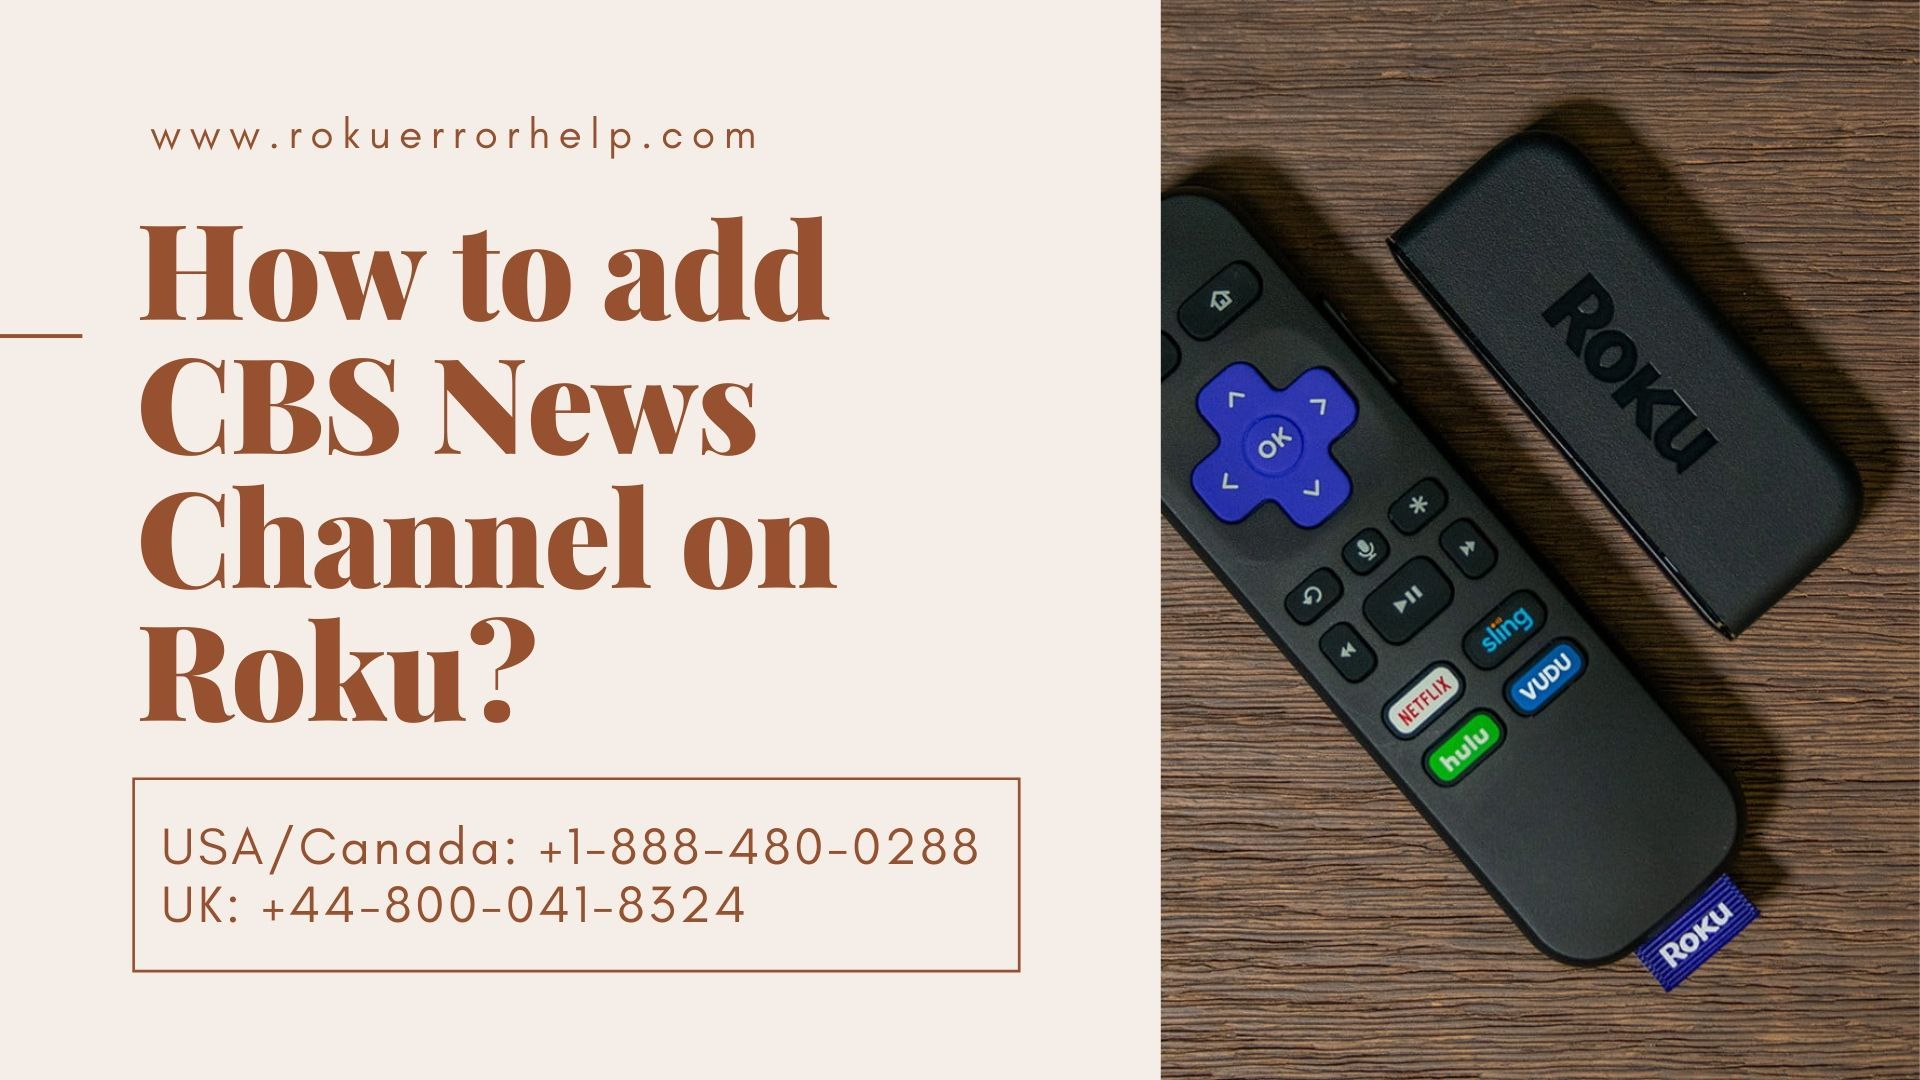 Dial +18884800288 to Add CBS News on Roku in 2020